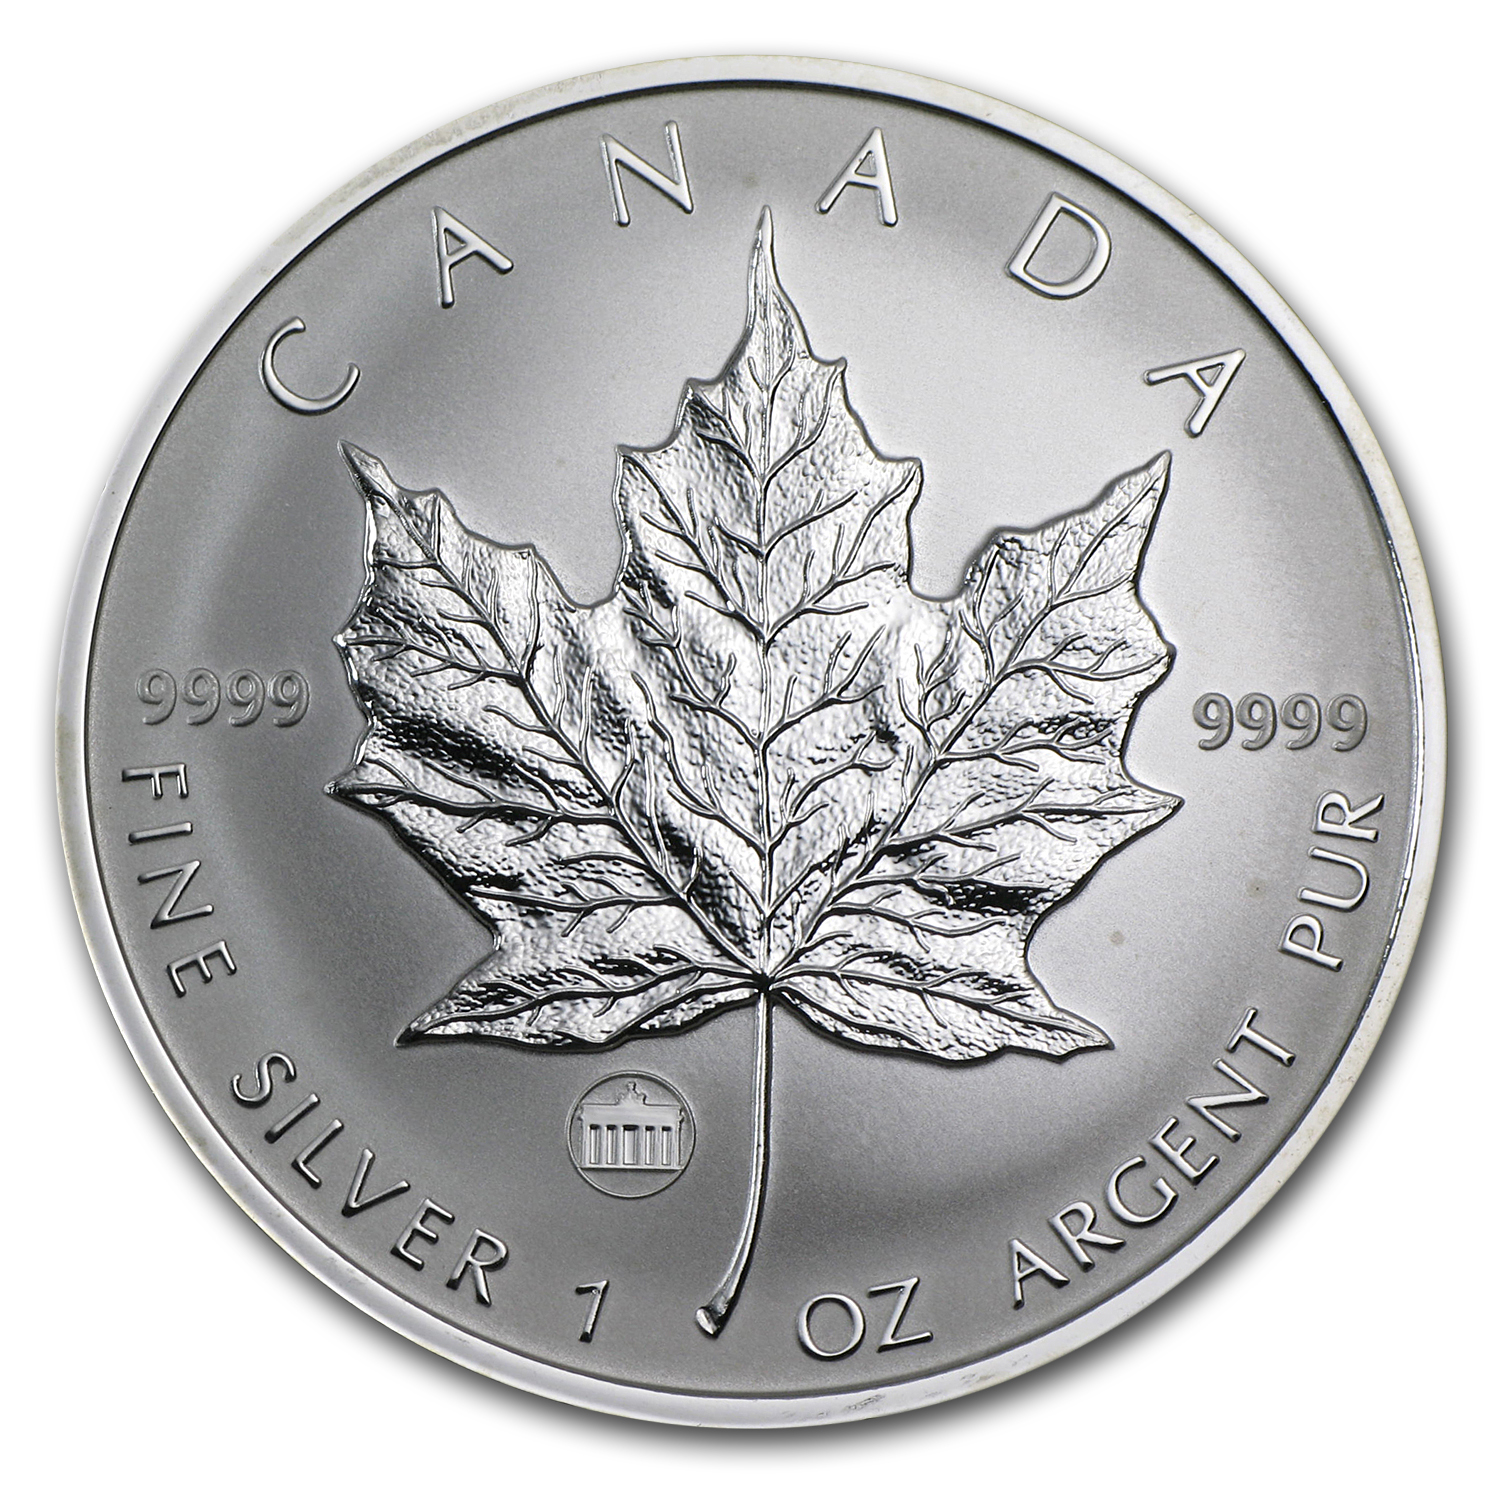 2009 Canada 1 oz Silver Maple Leaf Brandenburg Gate Privy